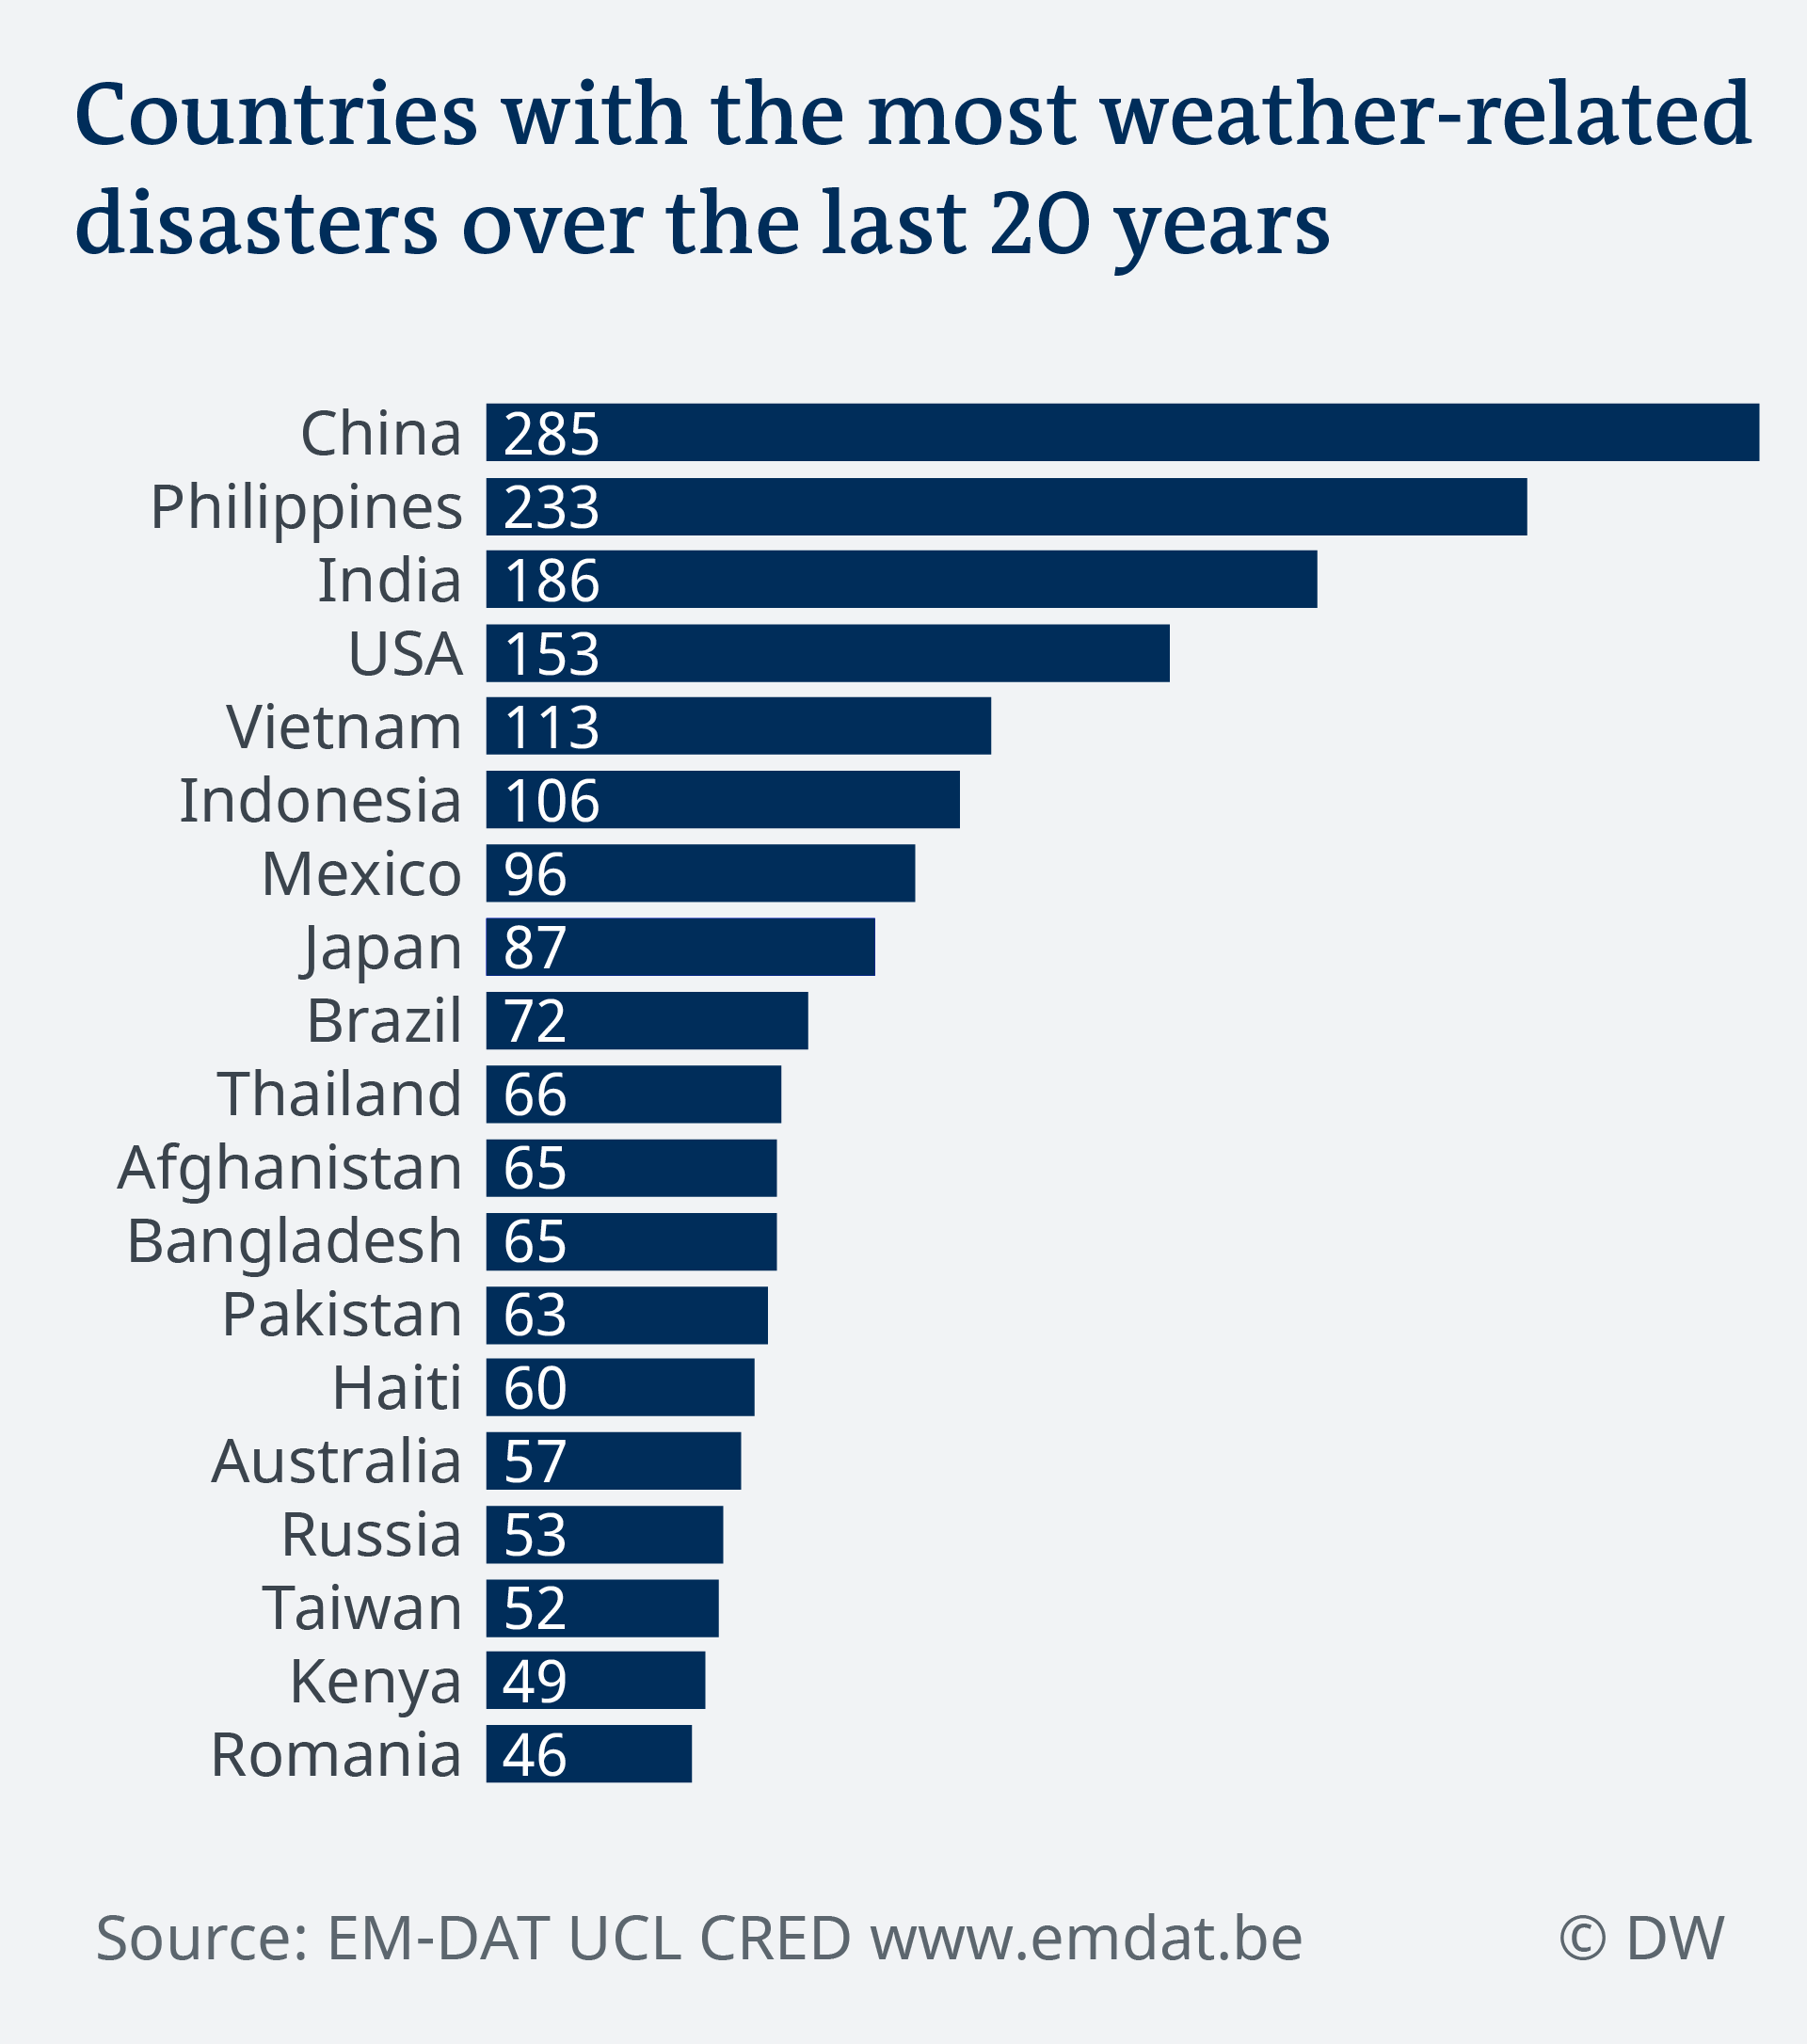 Data visualization climate risk insurance: Countries with most weather-related disasters over 20 years